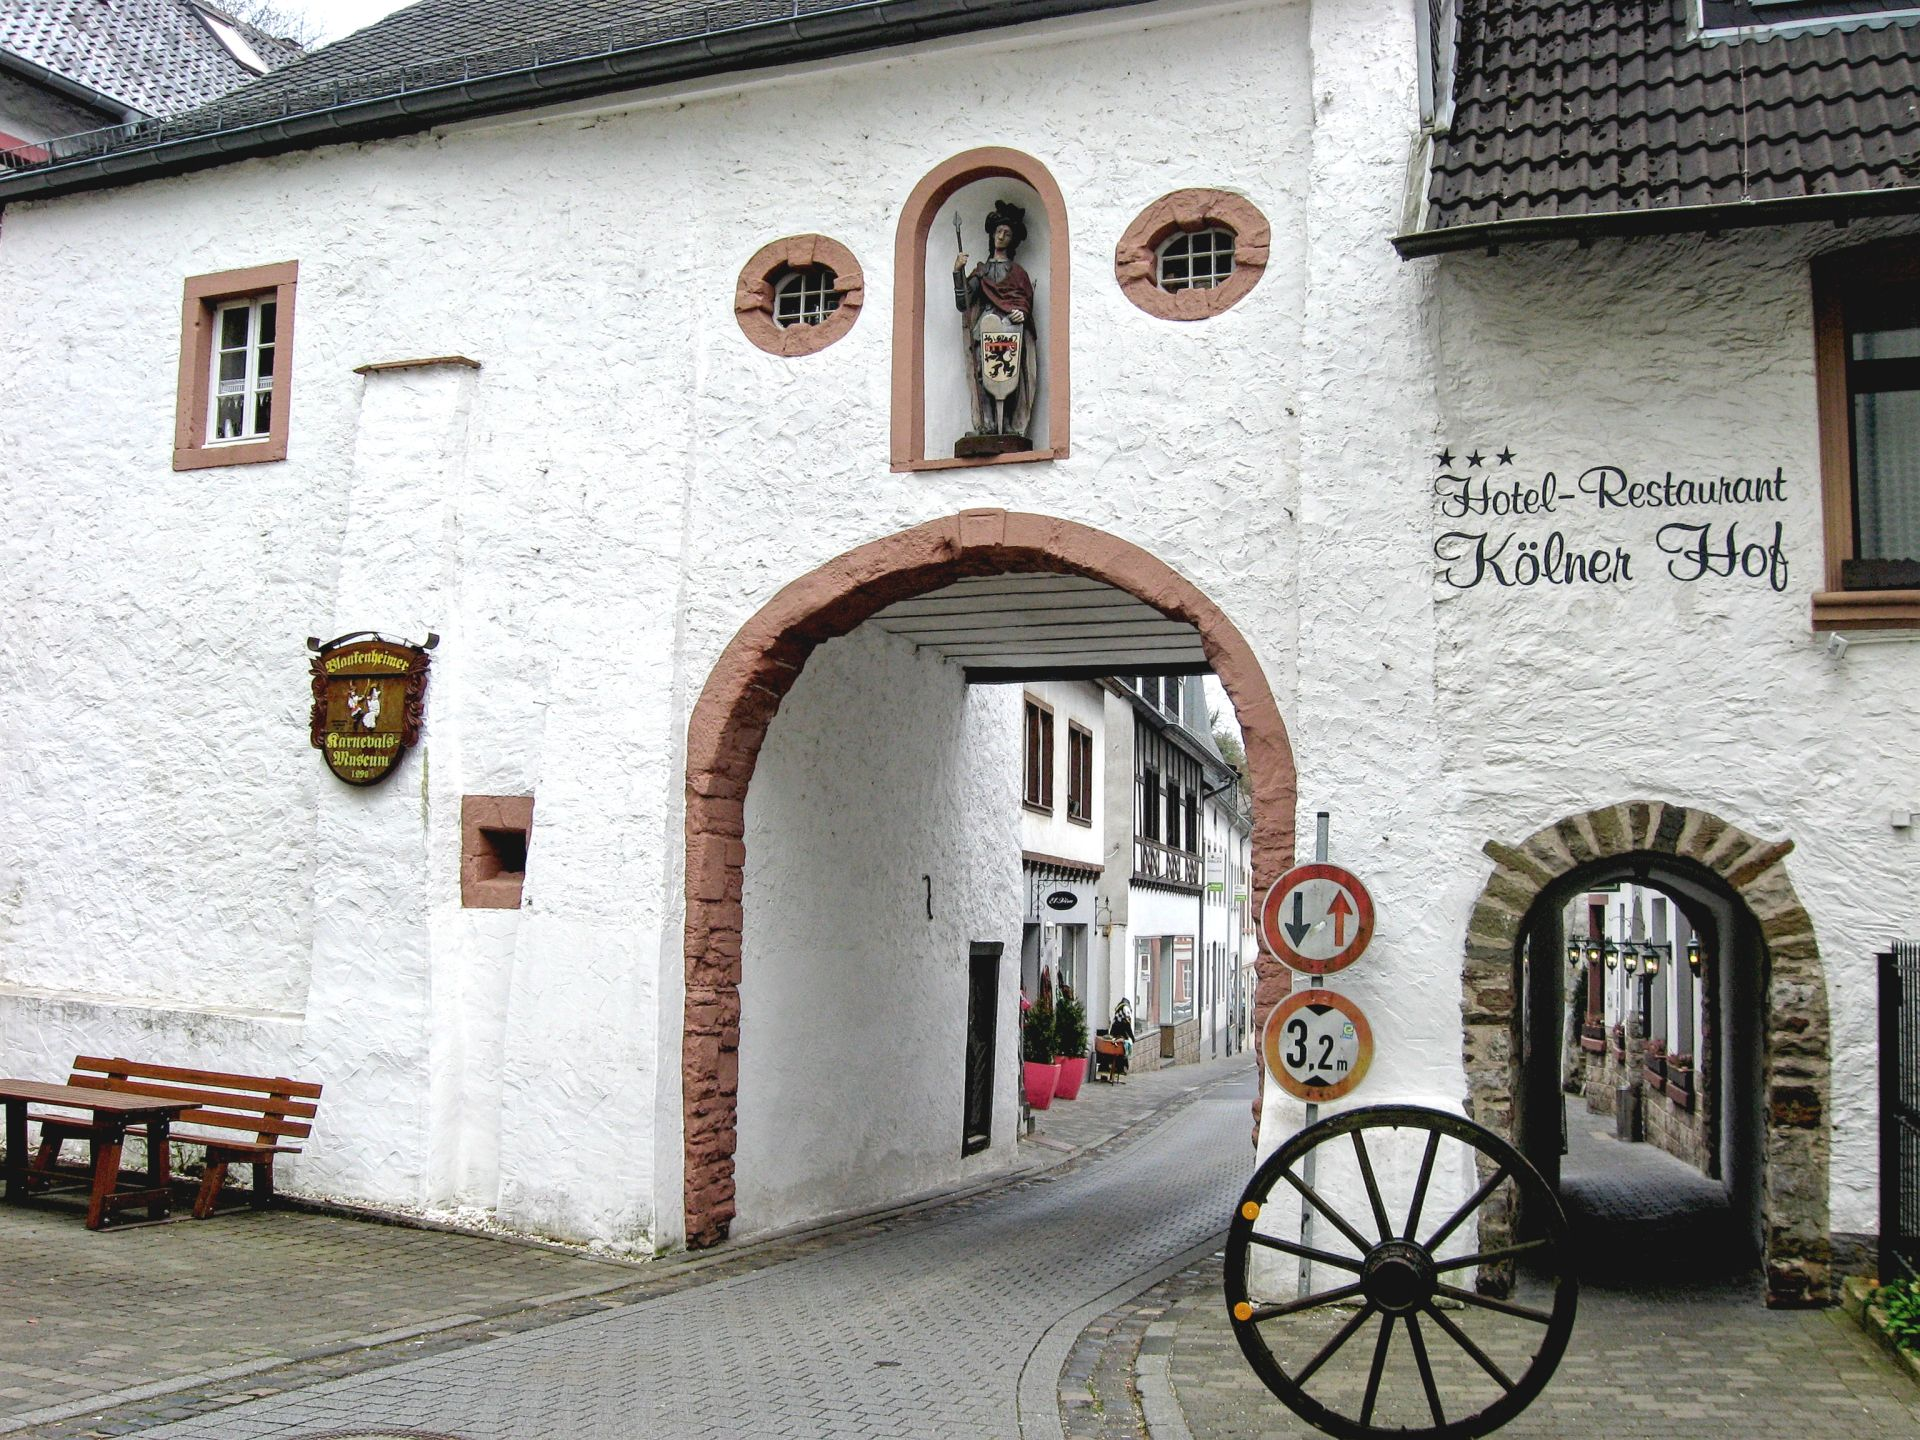 The Gate of St. George, Georgtor, Blankenheim, Germany, Complete travel guide of Blankenheim, Germany, Eifel valley, Ahr valley, the castle of Blankenheim, the spring of Ahr